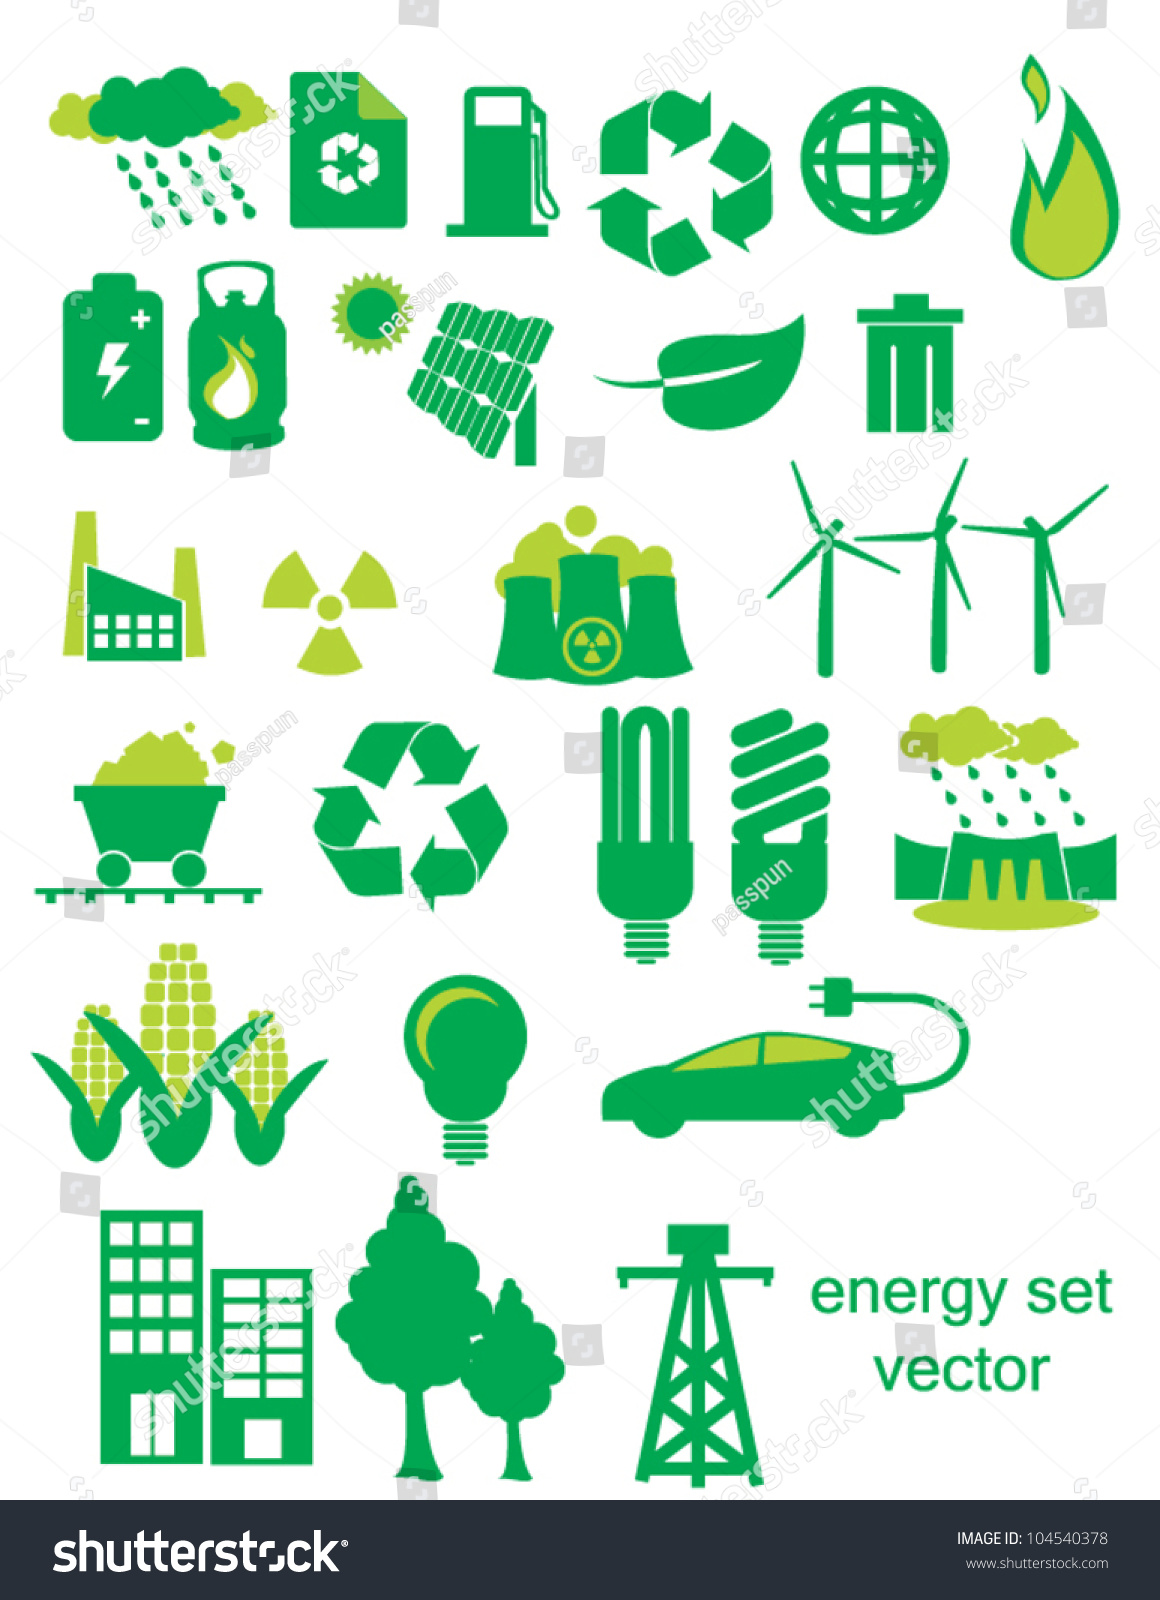 Green Energy Icon Set Depicting Energy Stock Vector